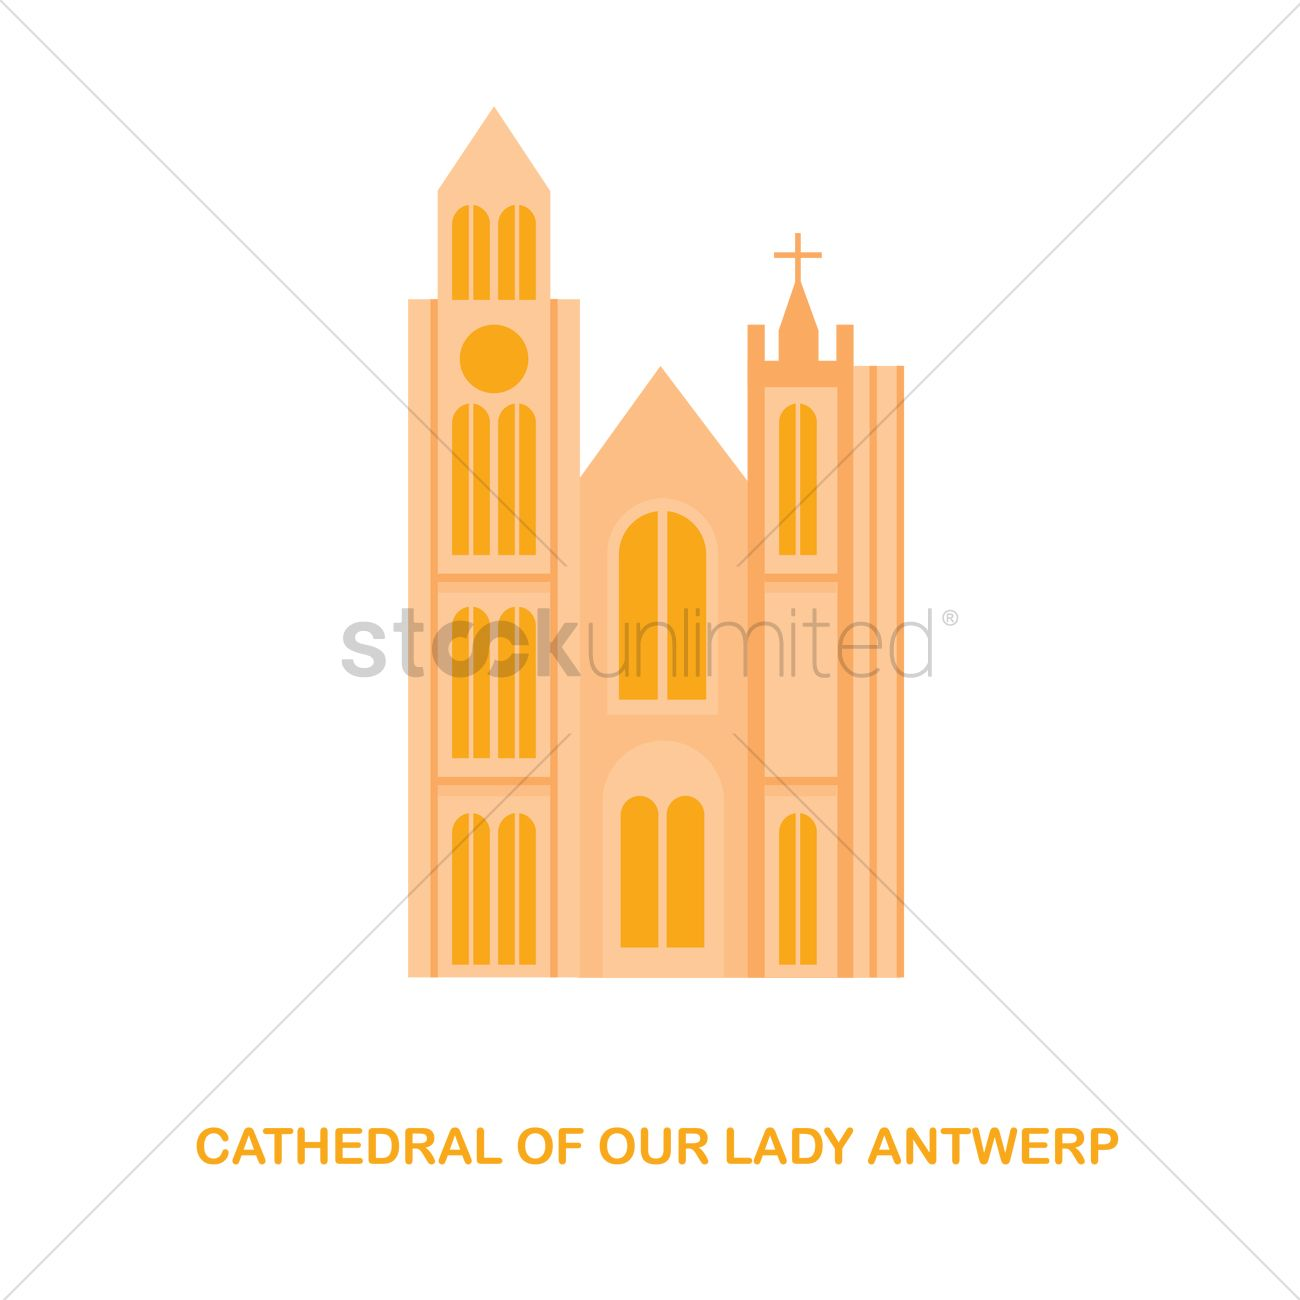 Cathedral of our lady antwerp Vector Image.